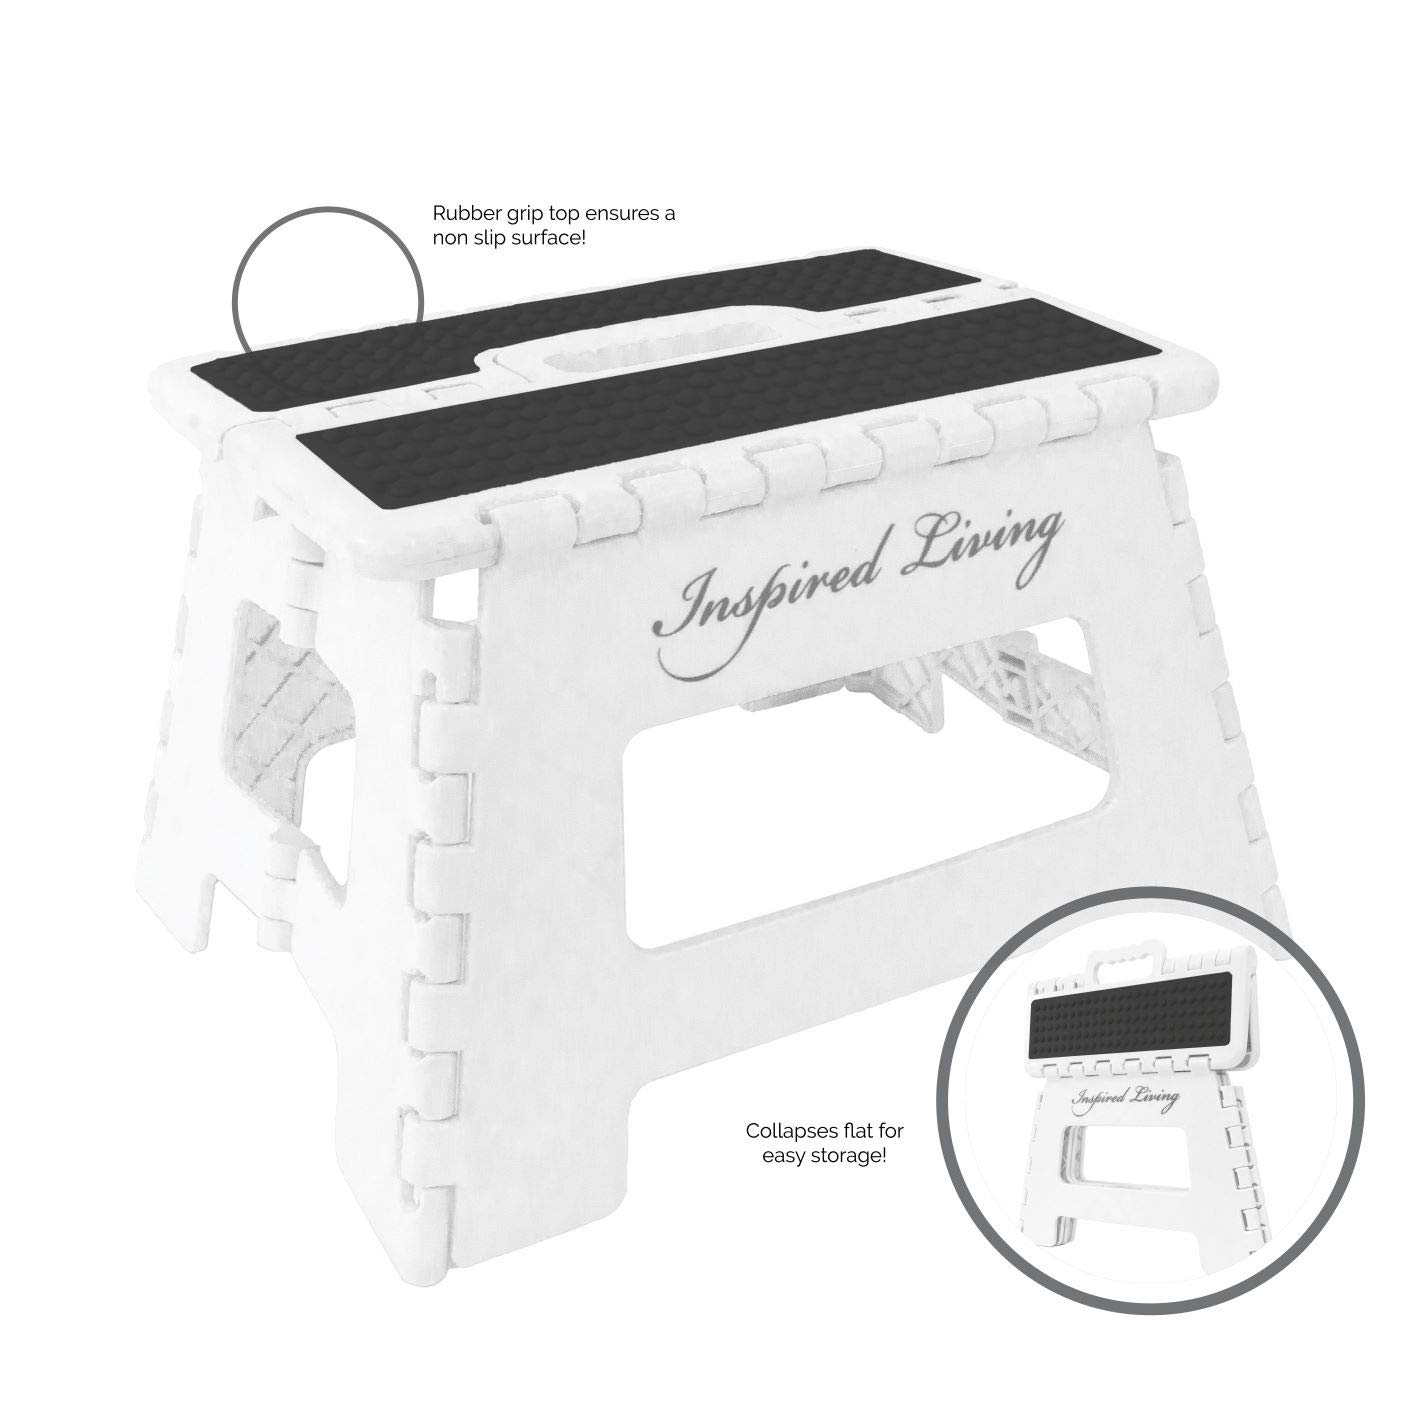 "Inspired Living Folding Step Stool Heavy Duty, 9"" High, WHITE ONYX"